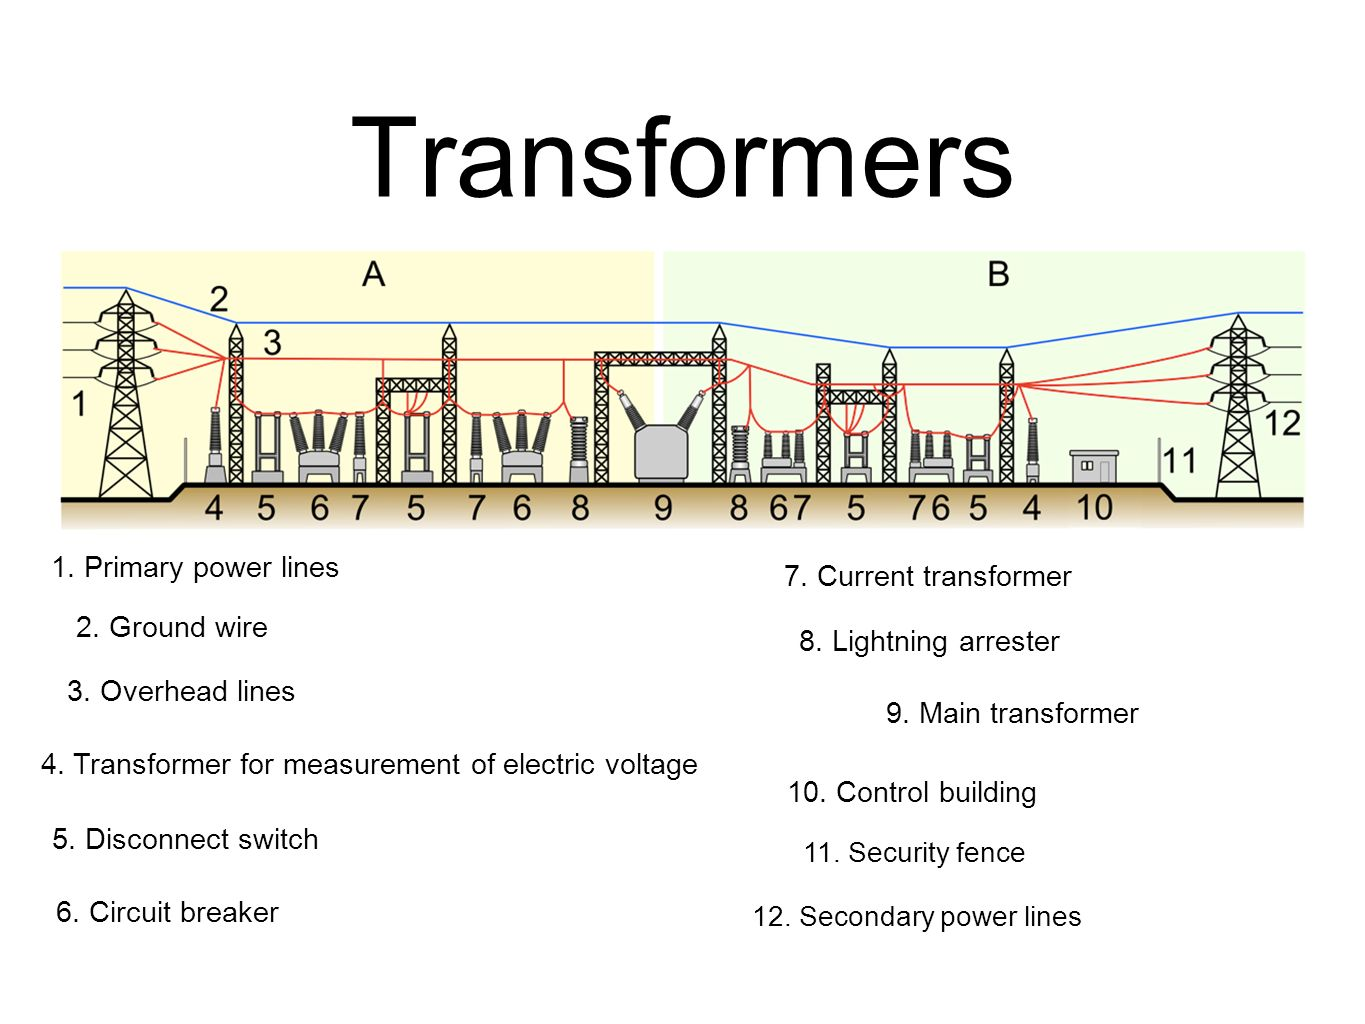 Transformers 1. Primary power lines 7. Current transformer